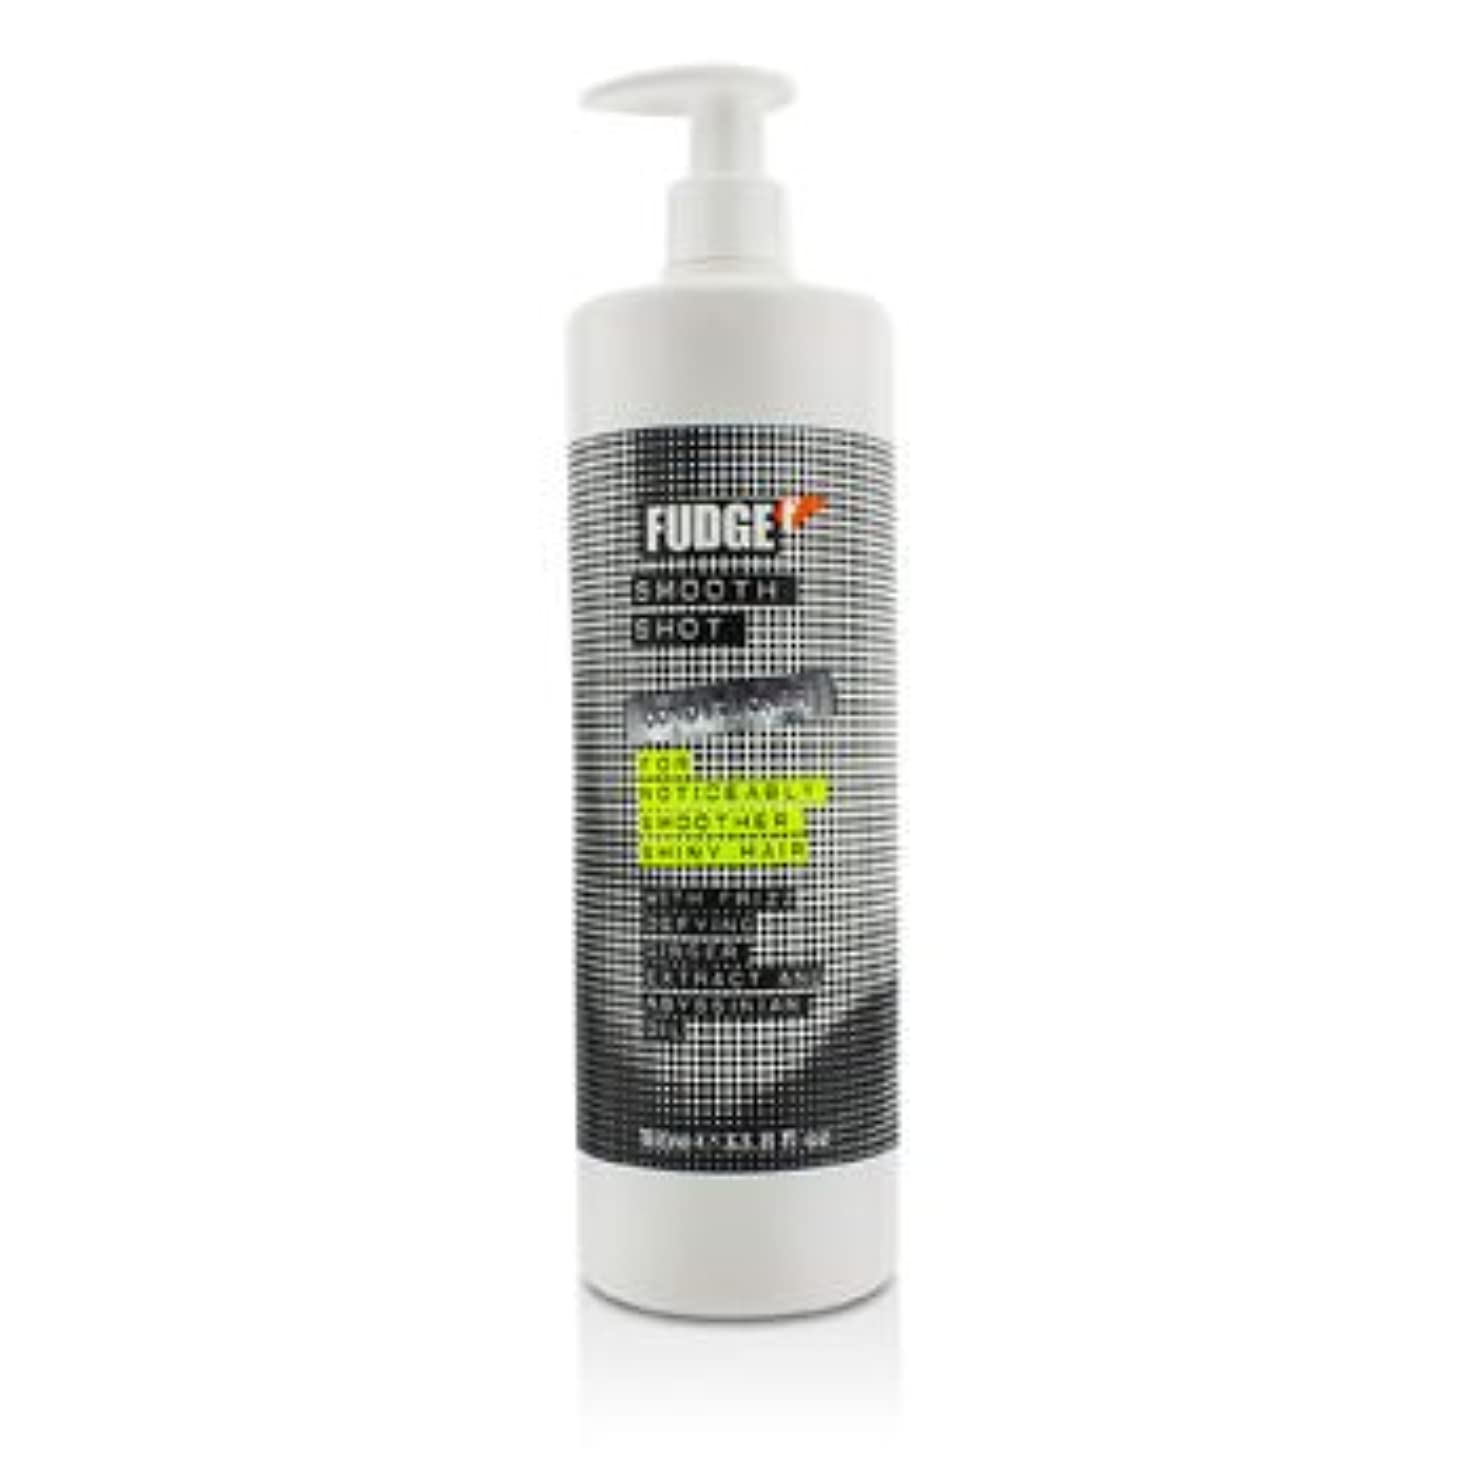 年金受給者比類なき賞賛[Fudge] Smooth Shot Conditioner (For Noticeably Smoother Shiny Hair) 1000ml/33.8oz